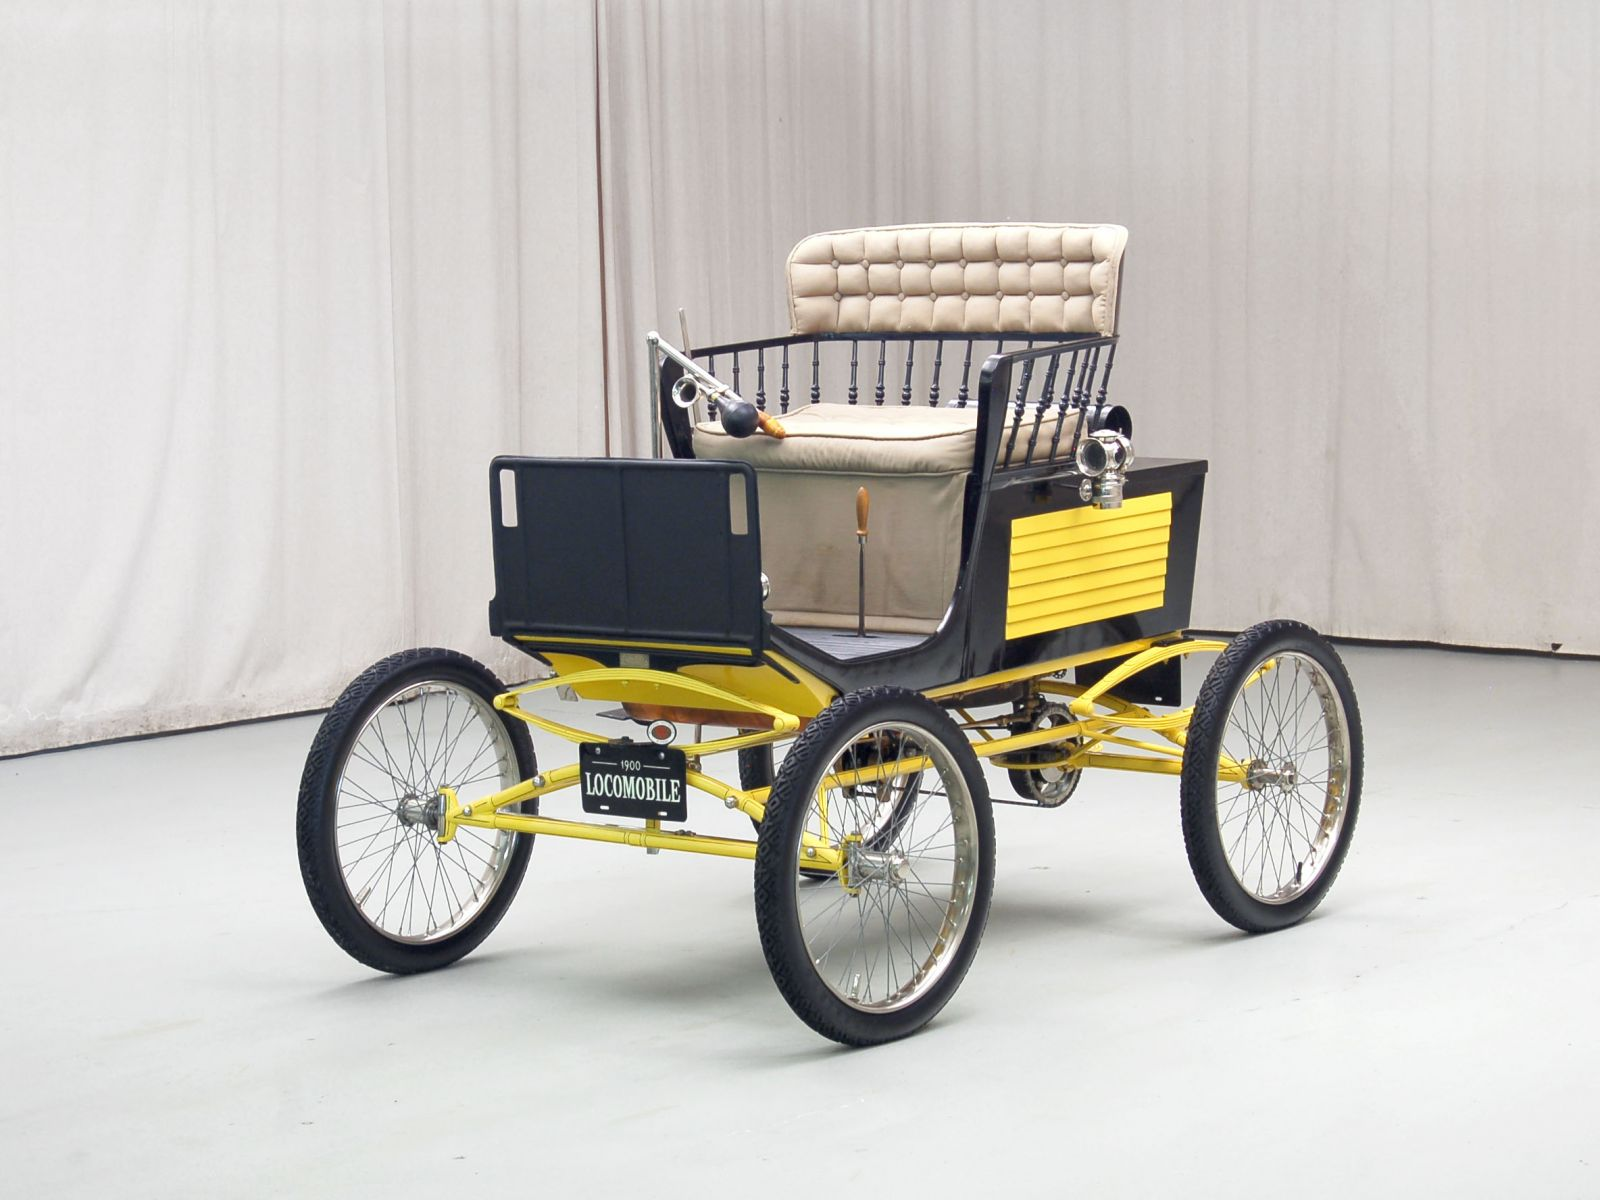 1900 Locomobile Steam Runabout